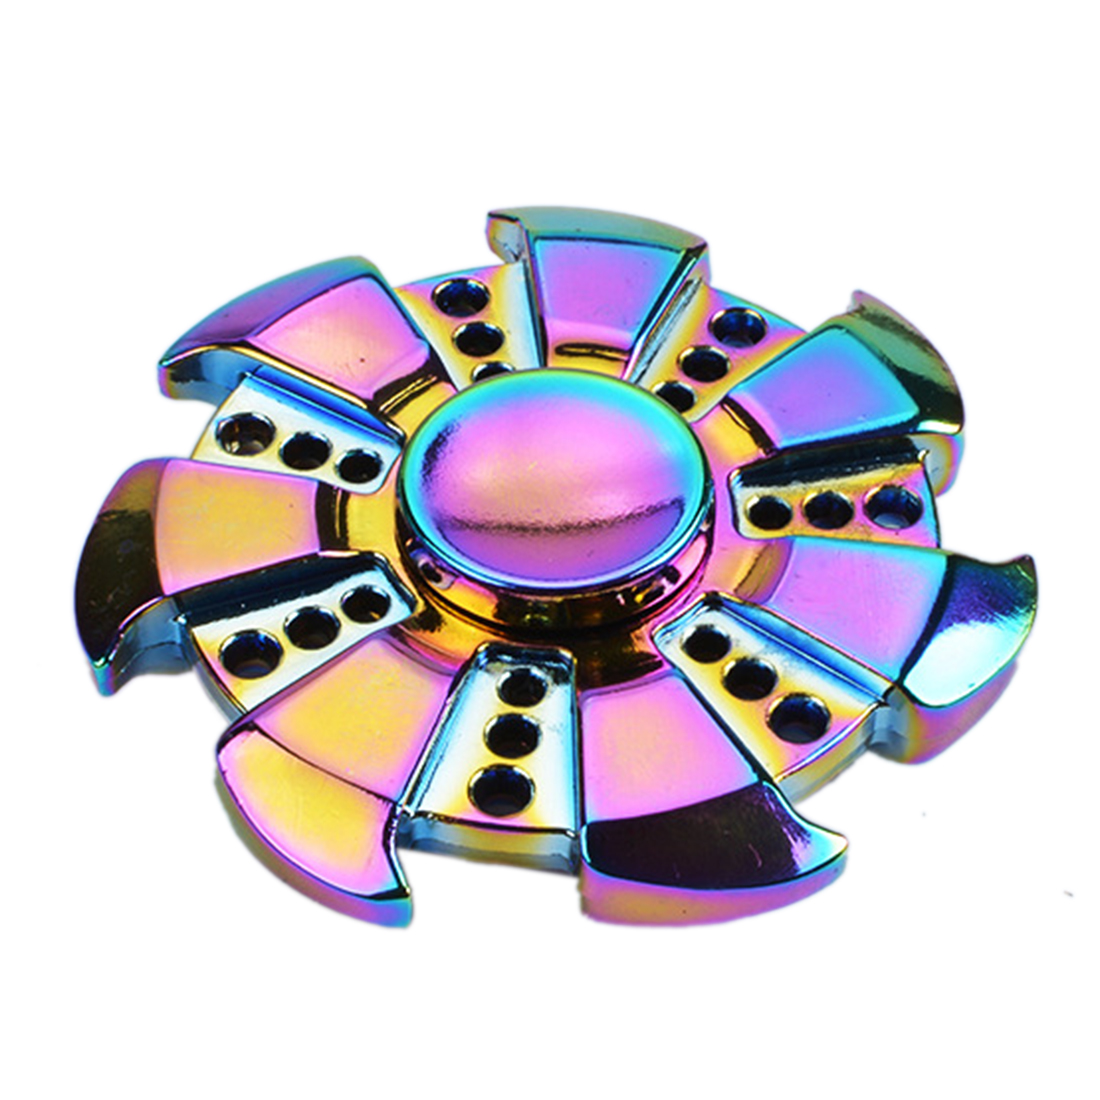 Babelemi Rainbow Color Zinc Alloy Tri-Spinner Fidget Hand Spinner Toys Autism ADHD Kids/Adult Funny Anti Stress Toy